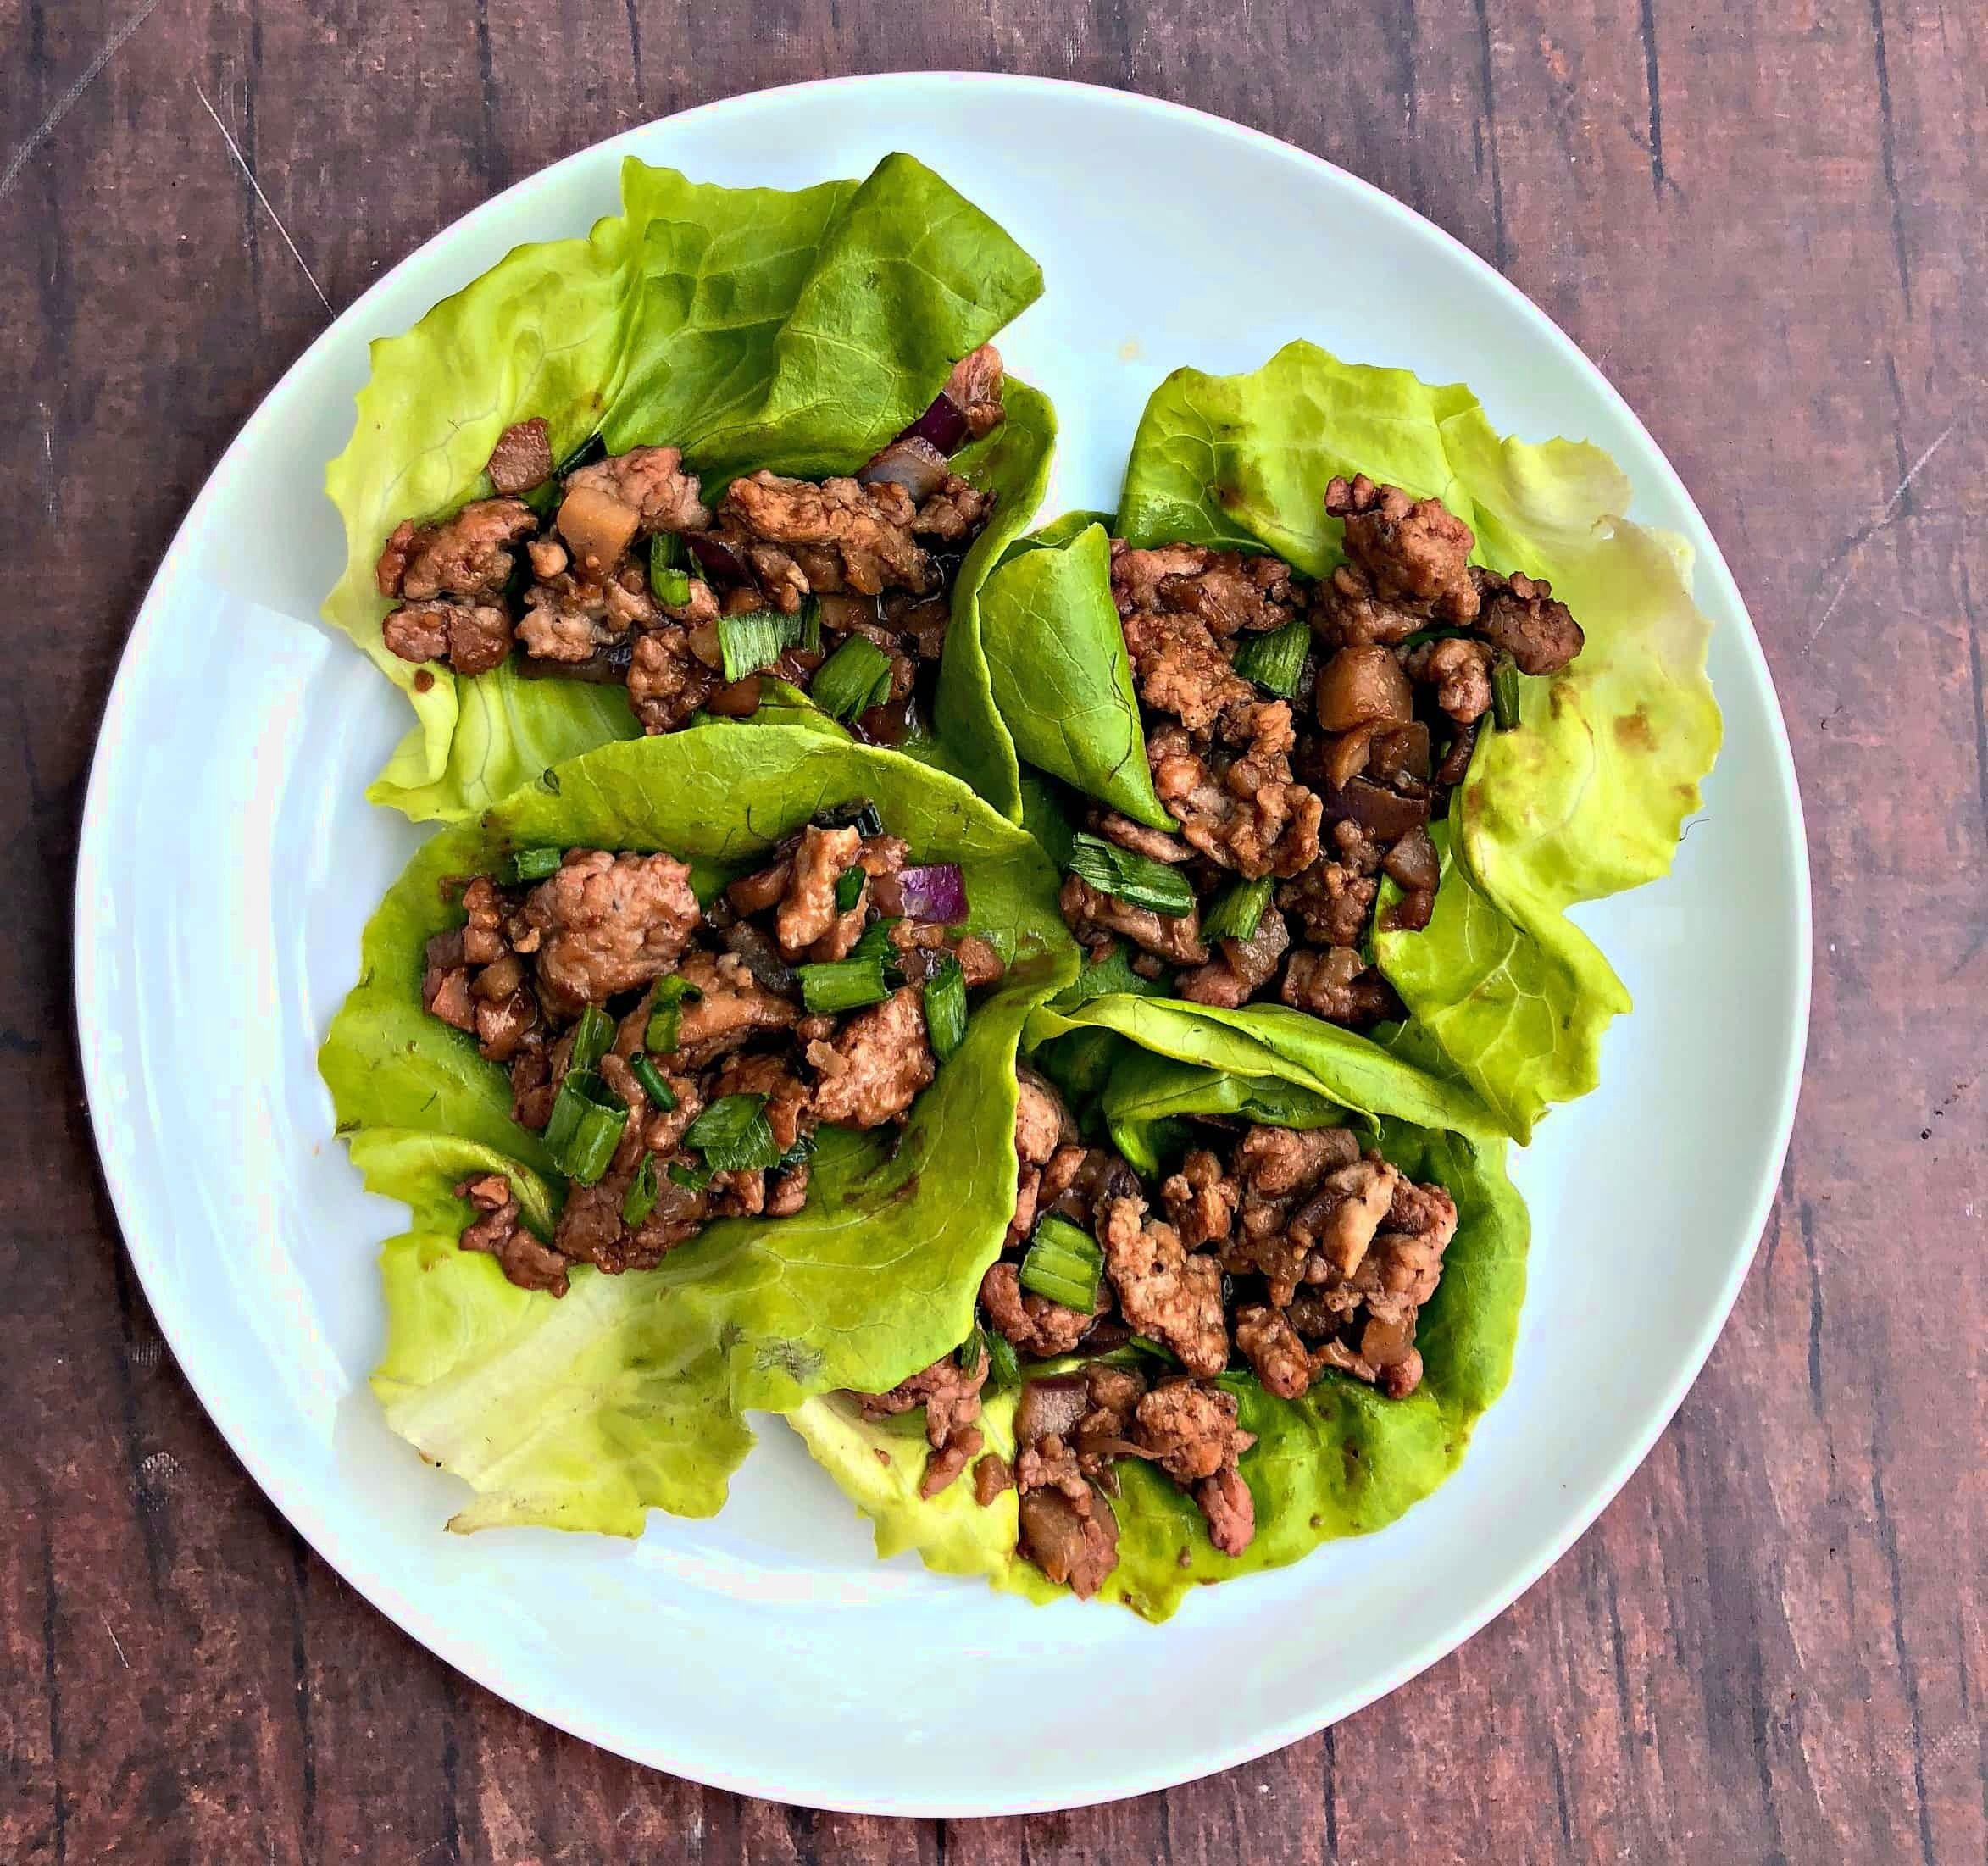 Easy keto lowcarb pf changs chicken lettuce wraps with